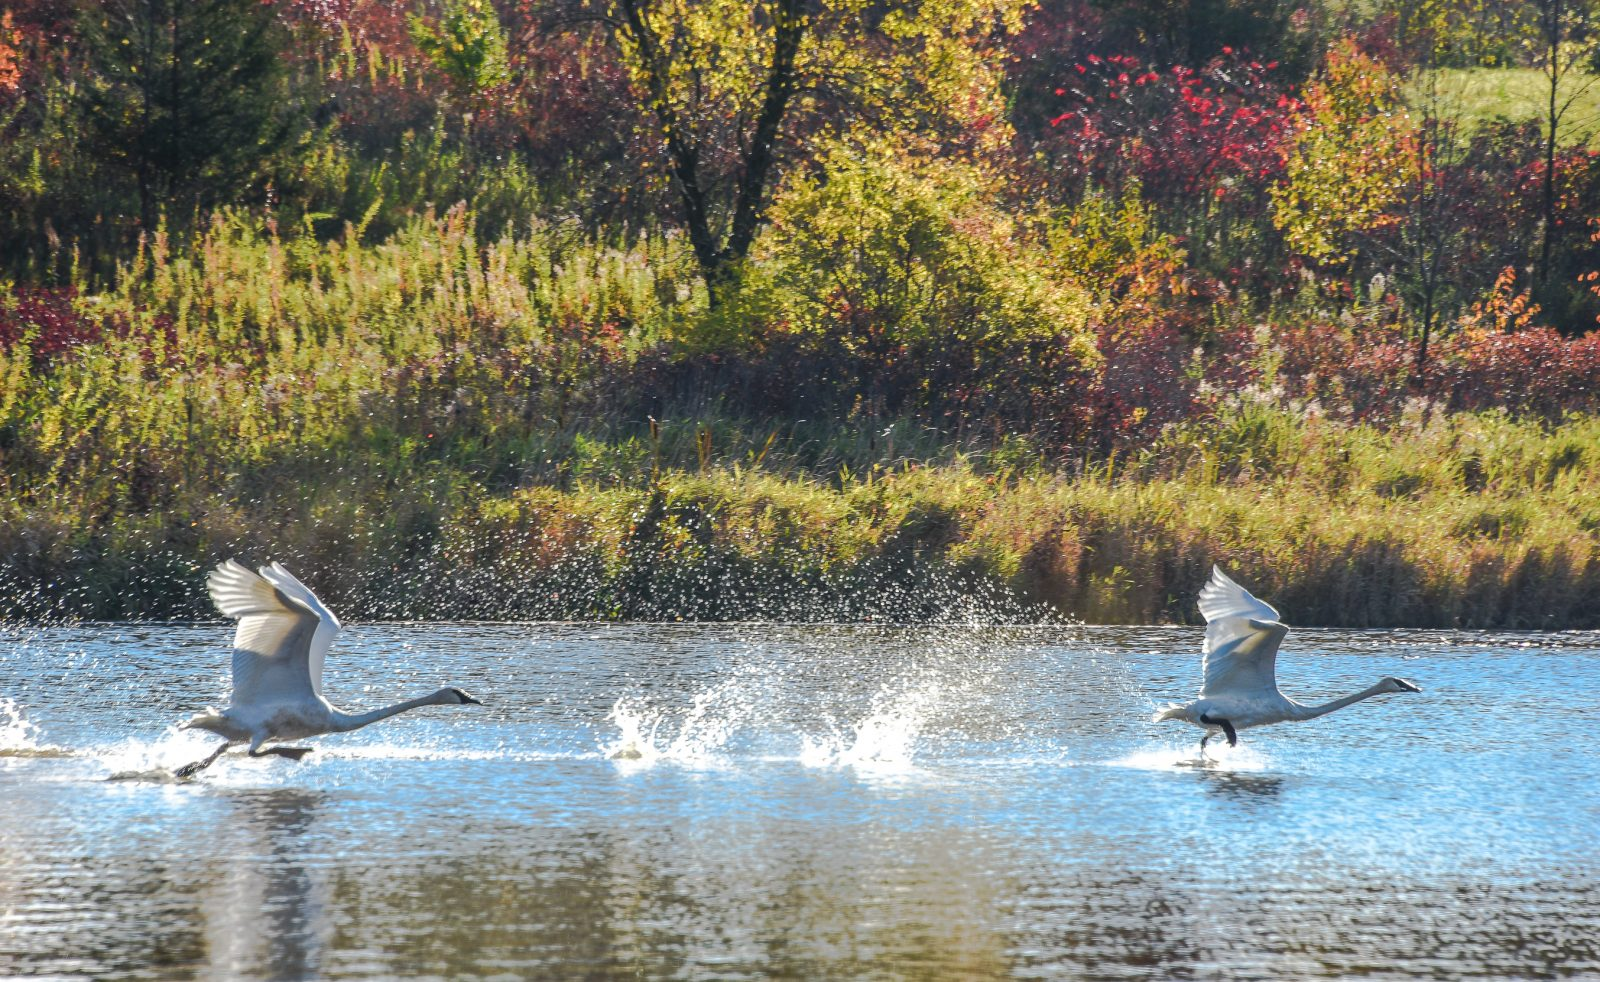 Taking Off Over the Pond